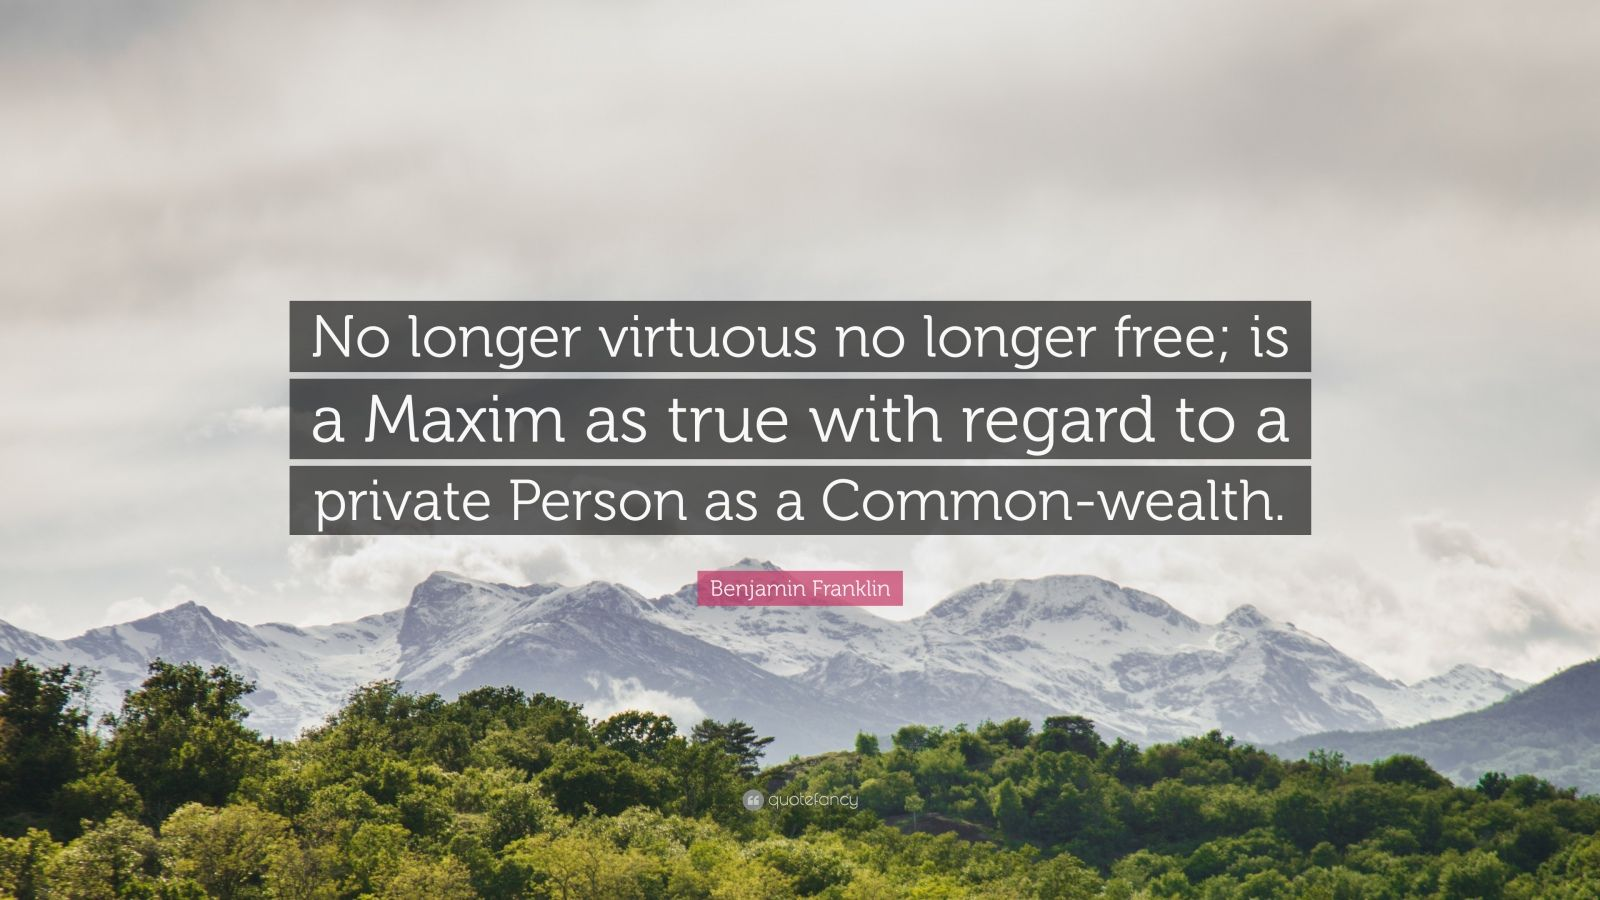 """Benjamin Franklin Quote: """"No longer virtuous no longer free; is a Maxim as true with regard to a private Person as a Common-wealth."""""""